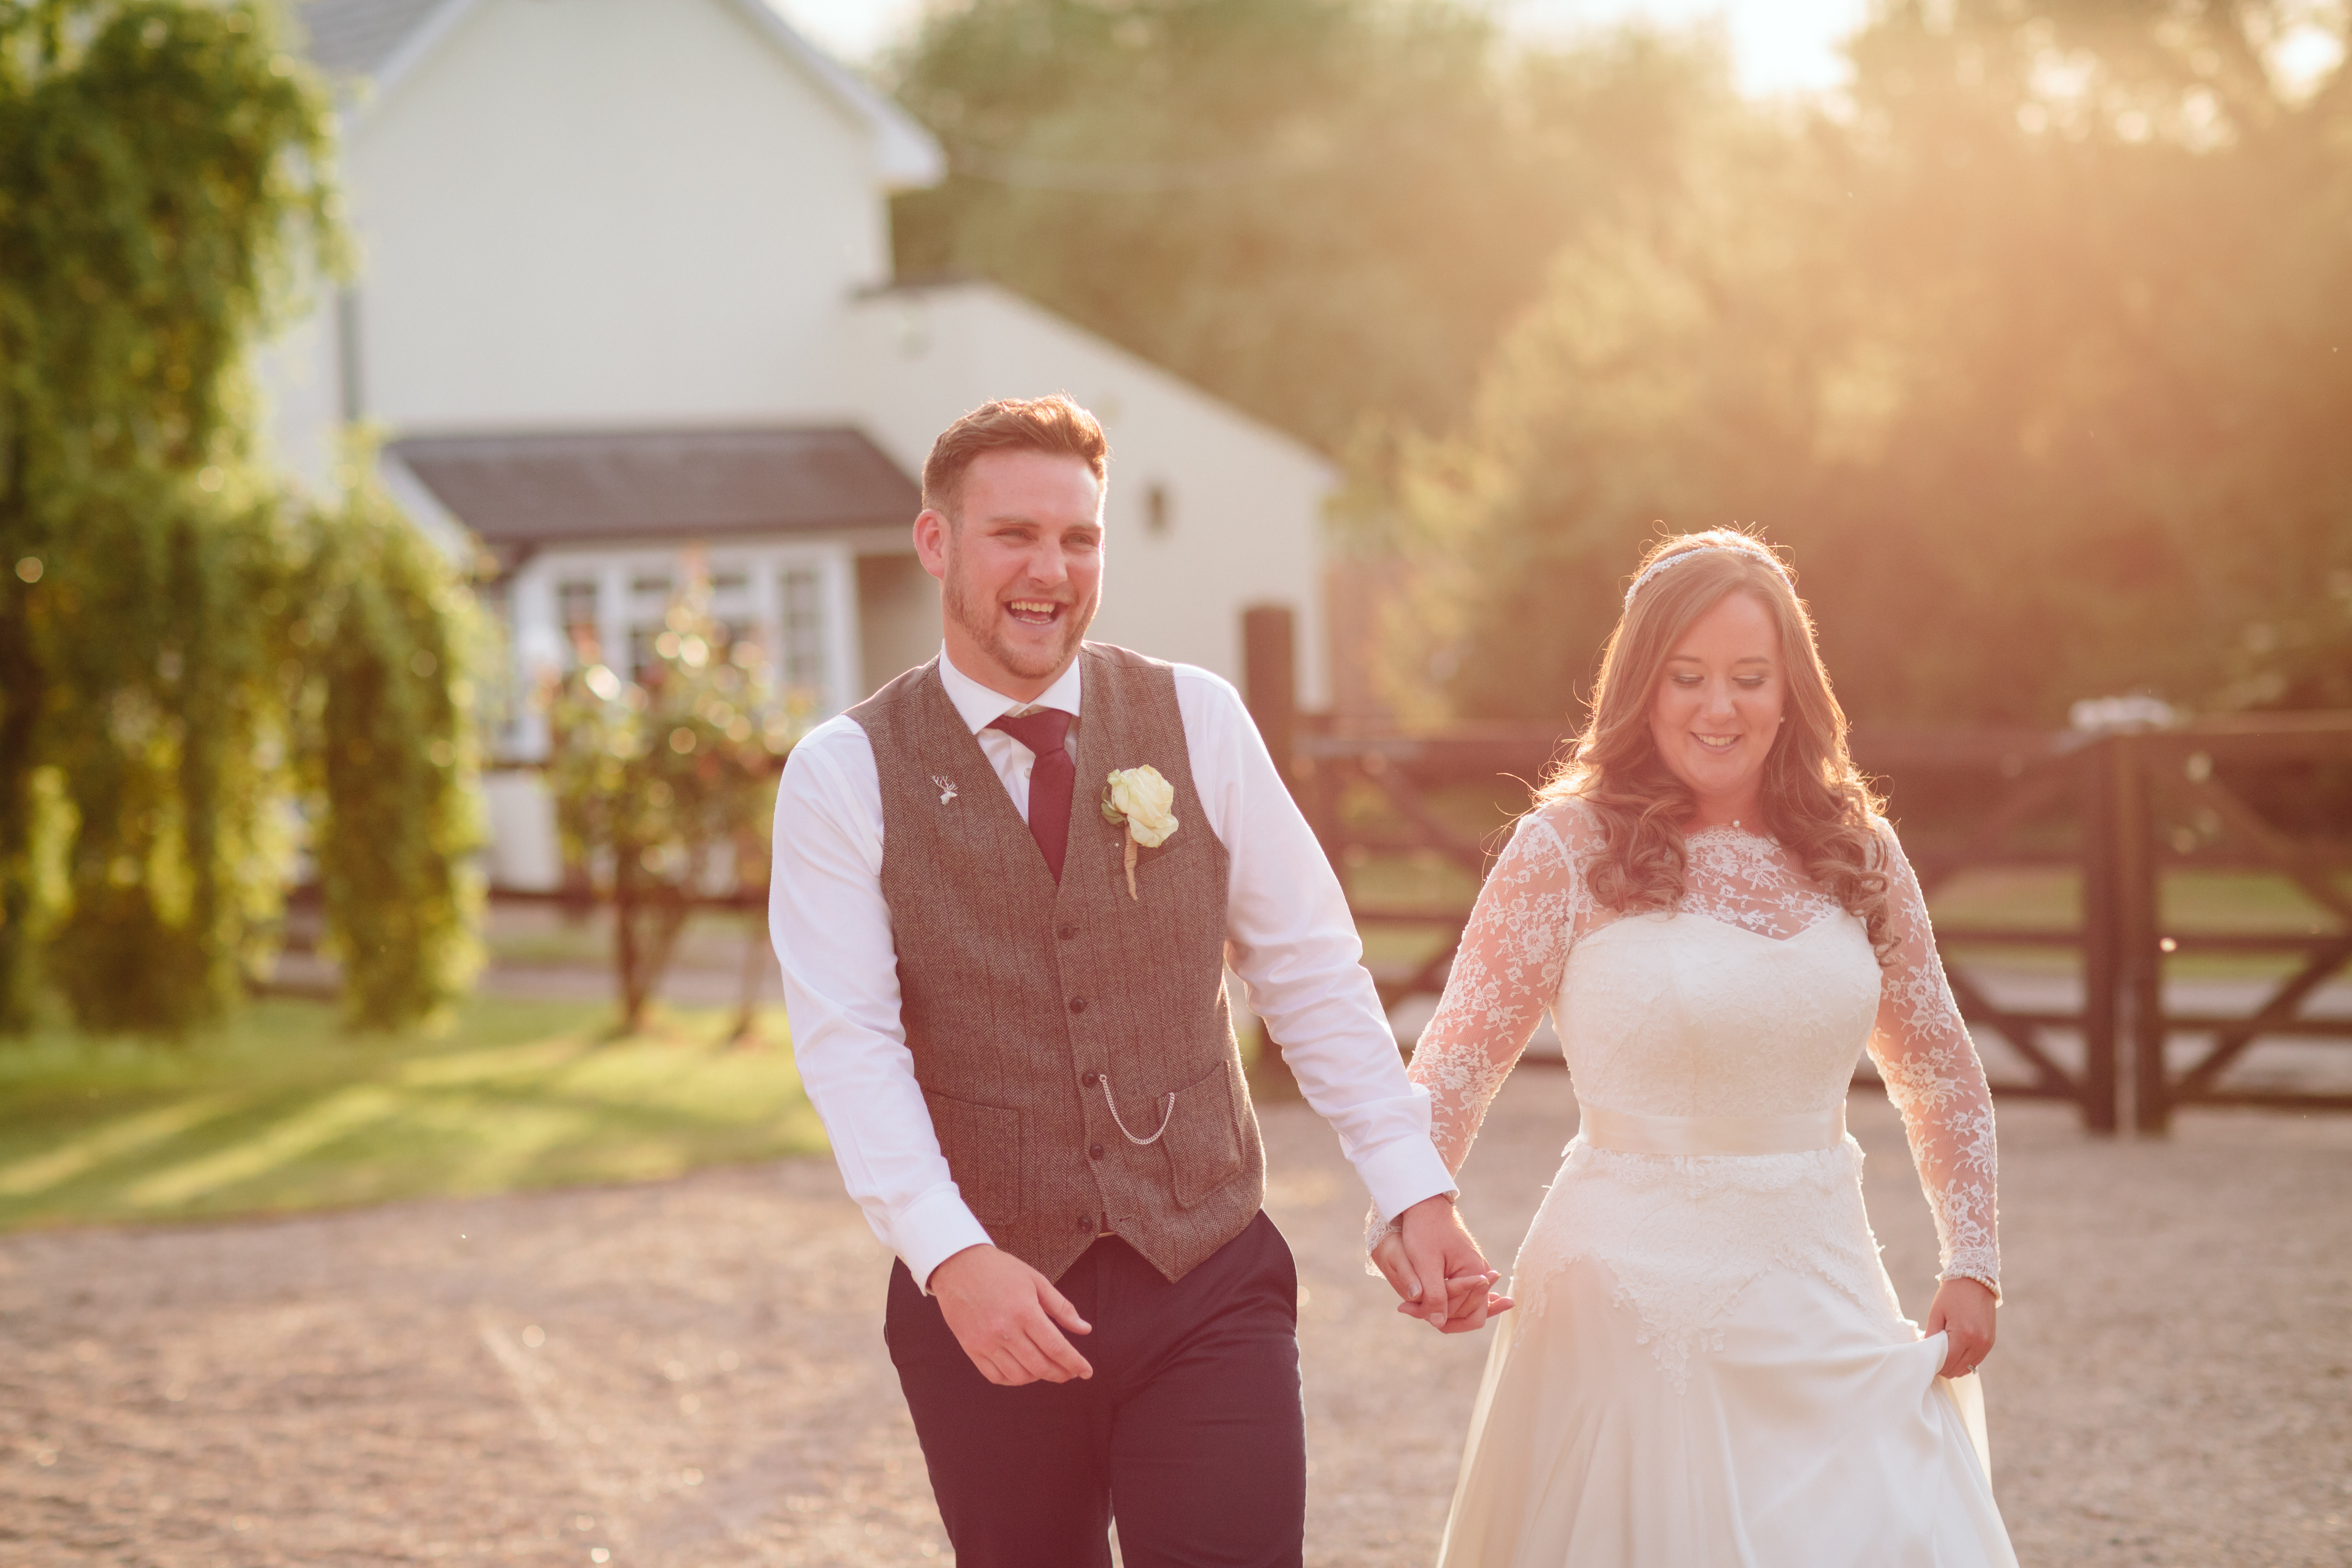 Sophie Callahan & Sam Blinman Wedding, Essex, by Real Simple Photography I via sophiecallahanblog.com I #equinephotography #photography #equineblogger